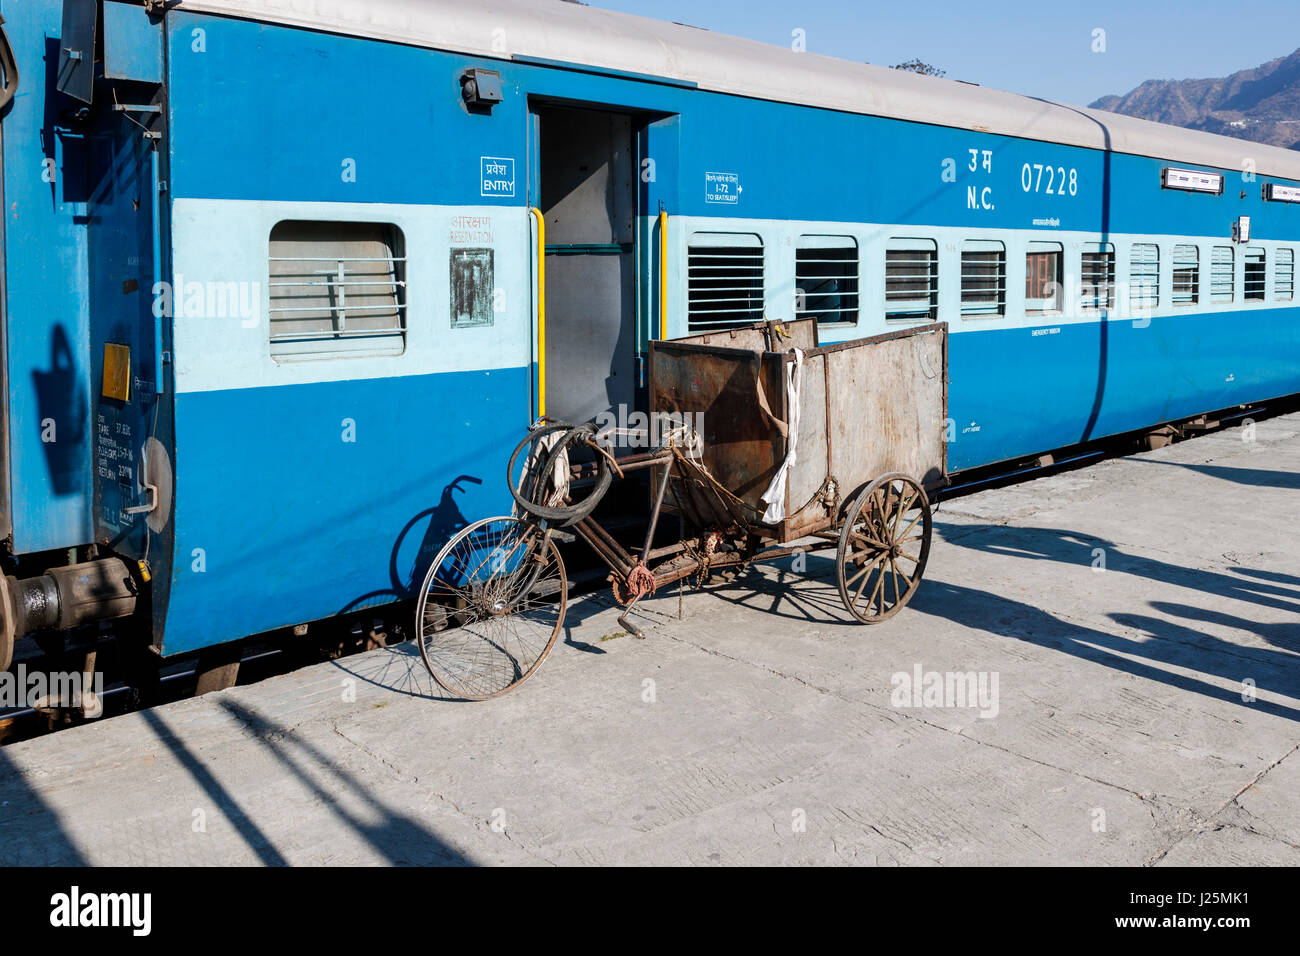 Battered, worn out rusty tricycle with no tyres next to a railway carriage at Kathgodam Station, Nainital District, - Stock Image